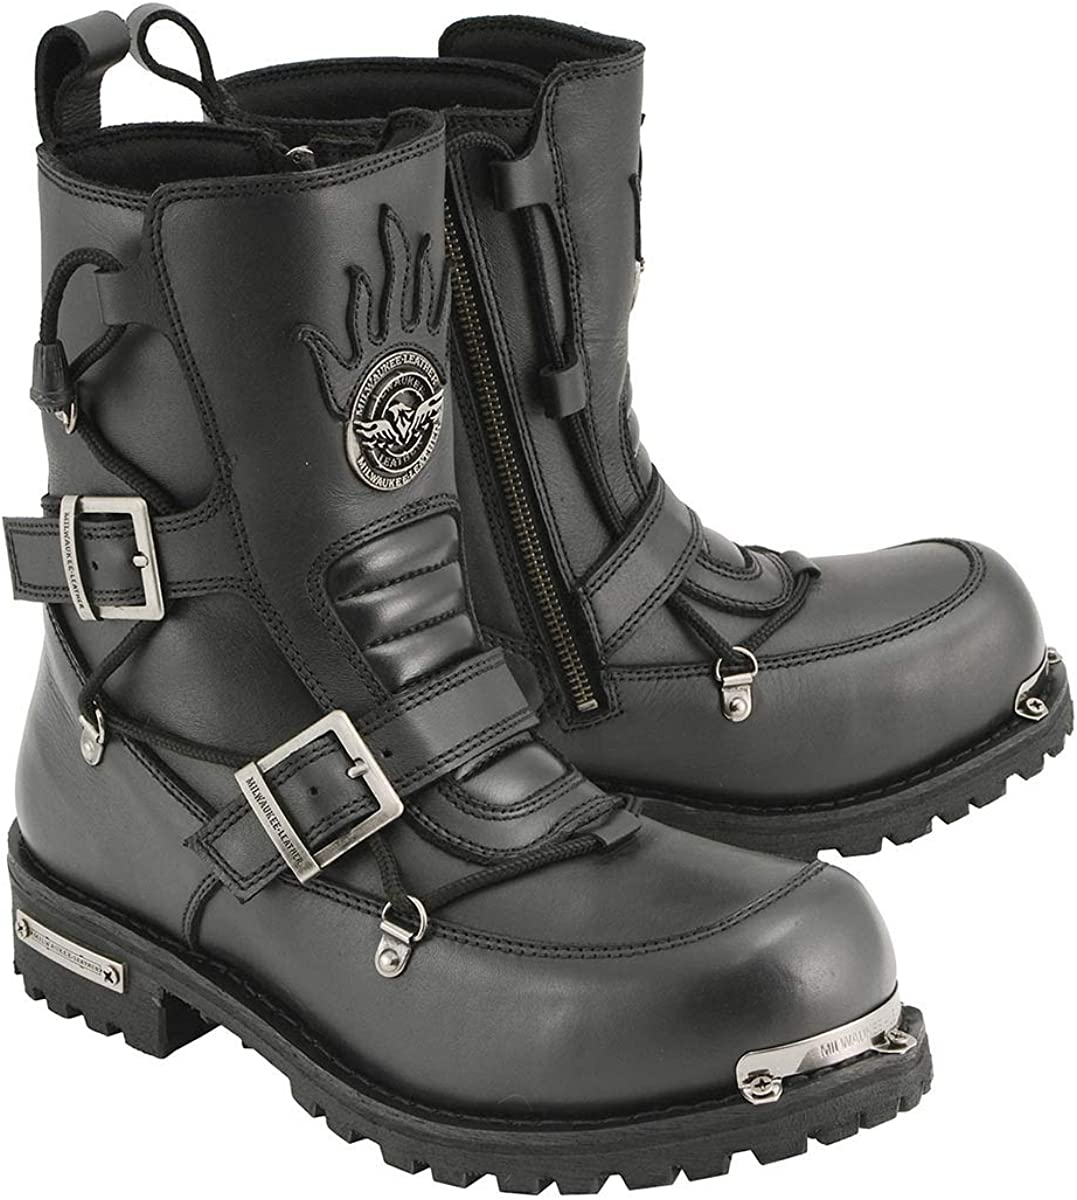 Milwaukee Leather Product MBM9076 Men's Black Logger Tactical Boots Cheap super special price with